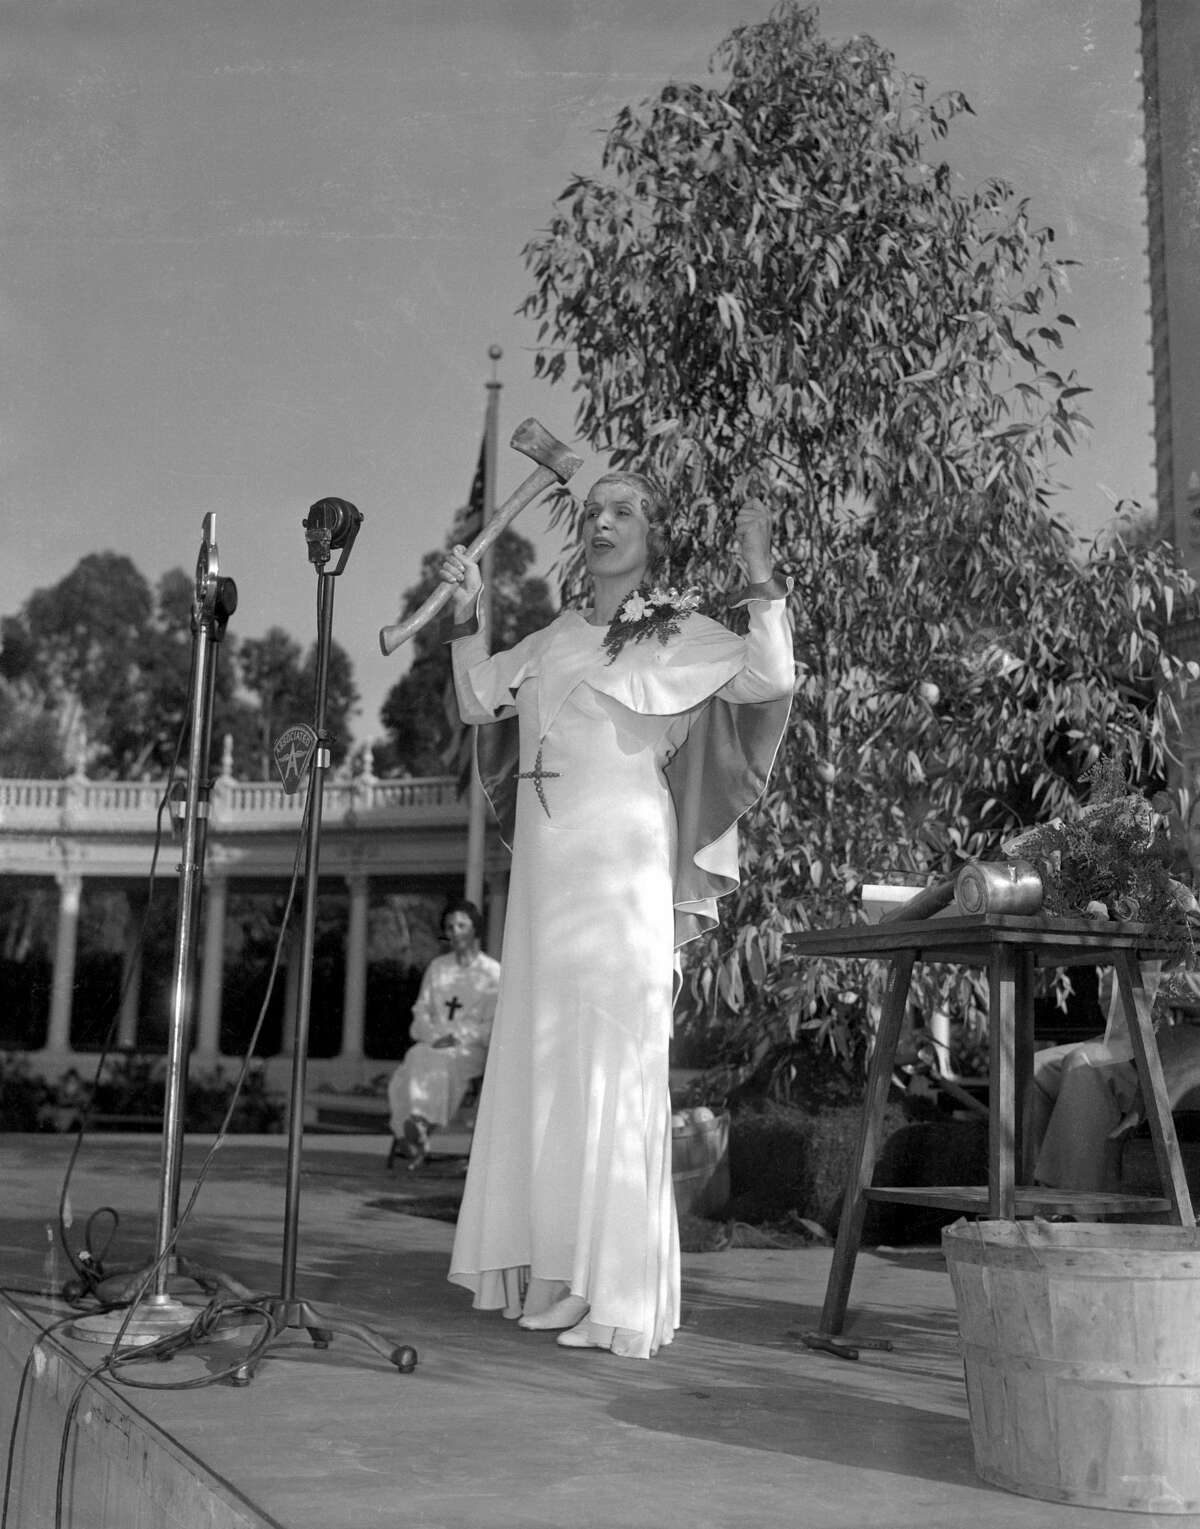 Aimee Semple McPherson, famous evangelist of the Angelus Temple, Los Angeles, wields an axe to illustrate a point in the sermon which she delivered before thousands of followers in the Organ Amphitheater at the California Pacific International Exposition in San Diego.